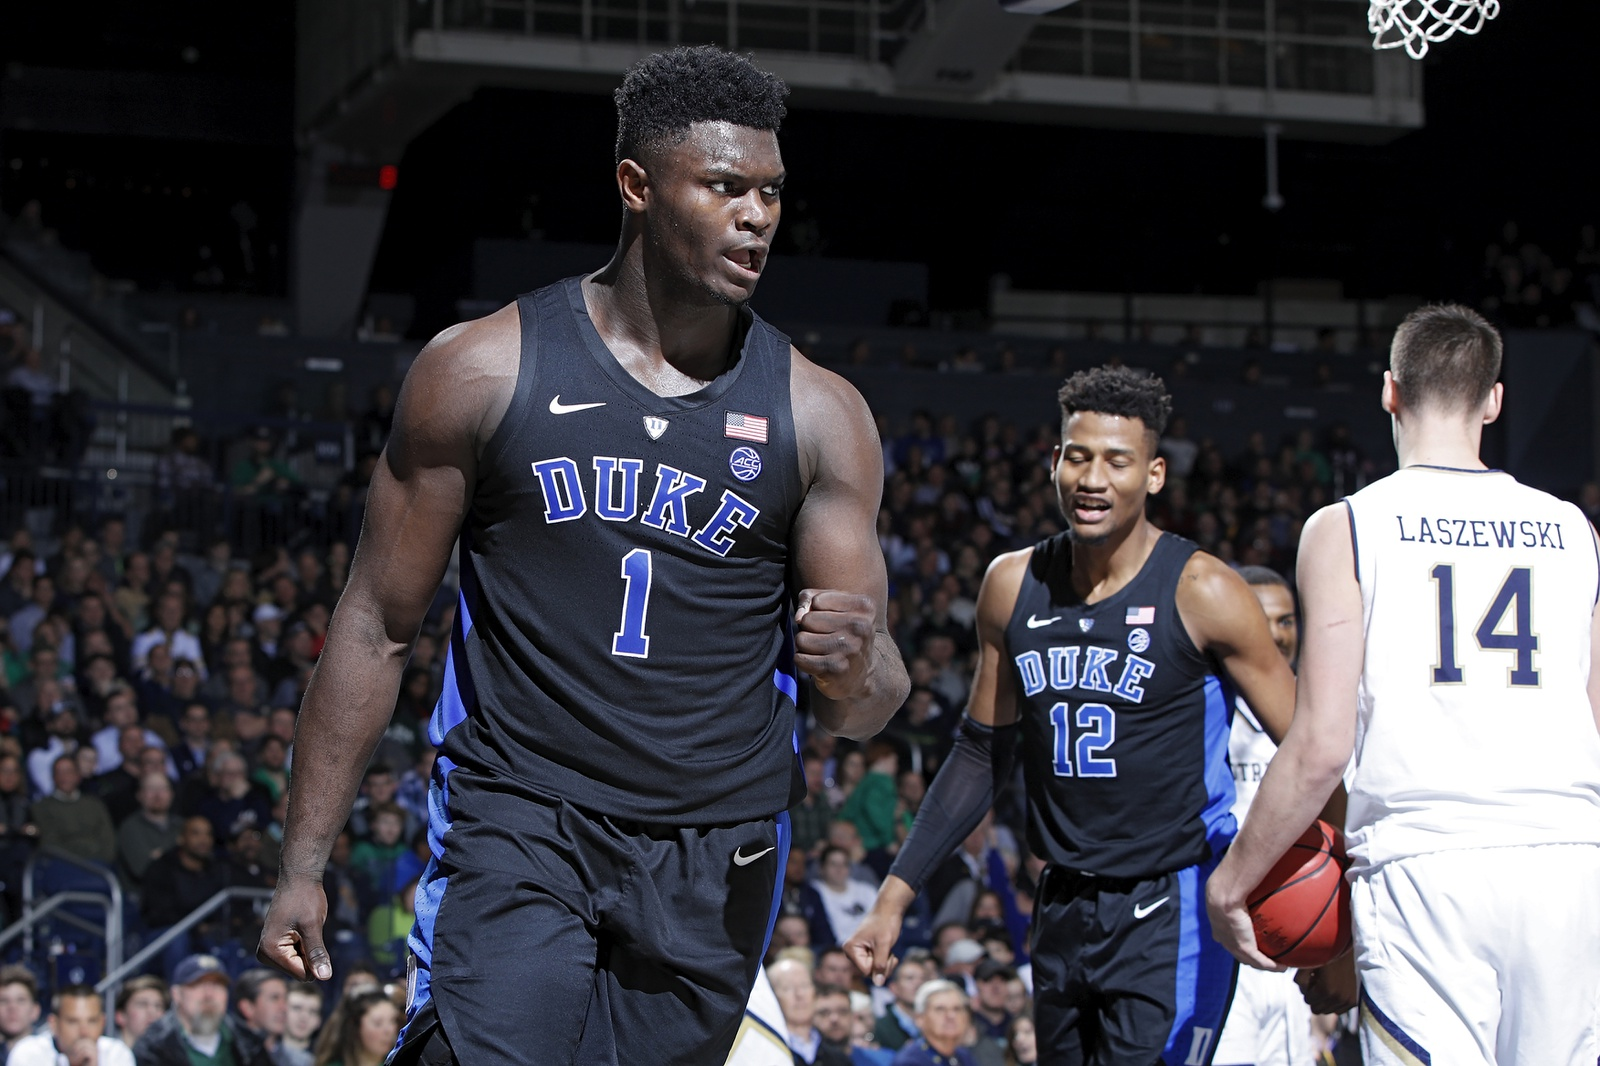 Zion Williamson #1 of the Duke Blue Devils reacts after scoring a basket and drawing a foul against the Notre Dame Fighting Irish in the second half of the game at Purcell Pavilion on January 28, 2019 in South Bend, Indiana.